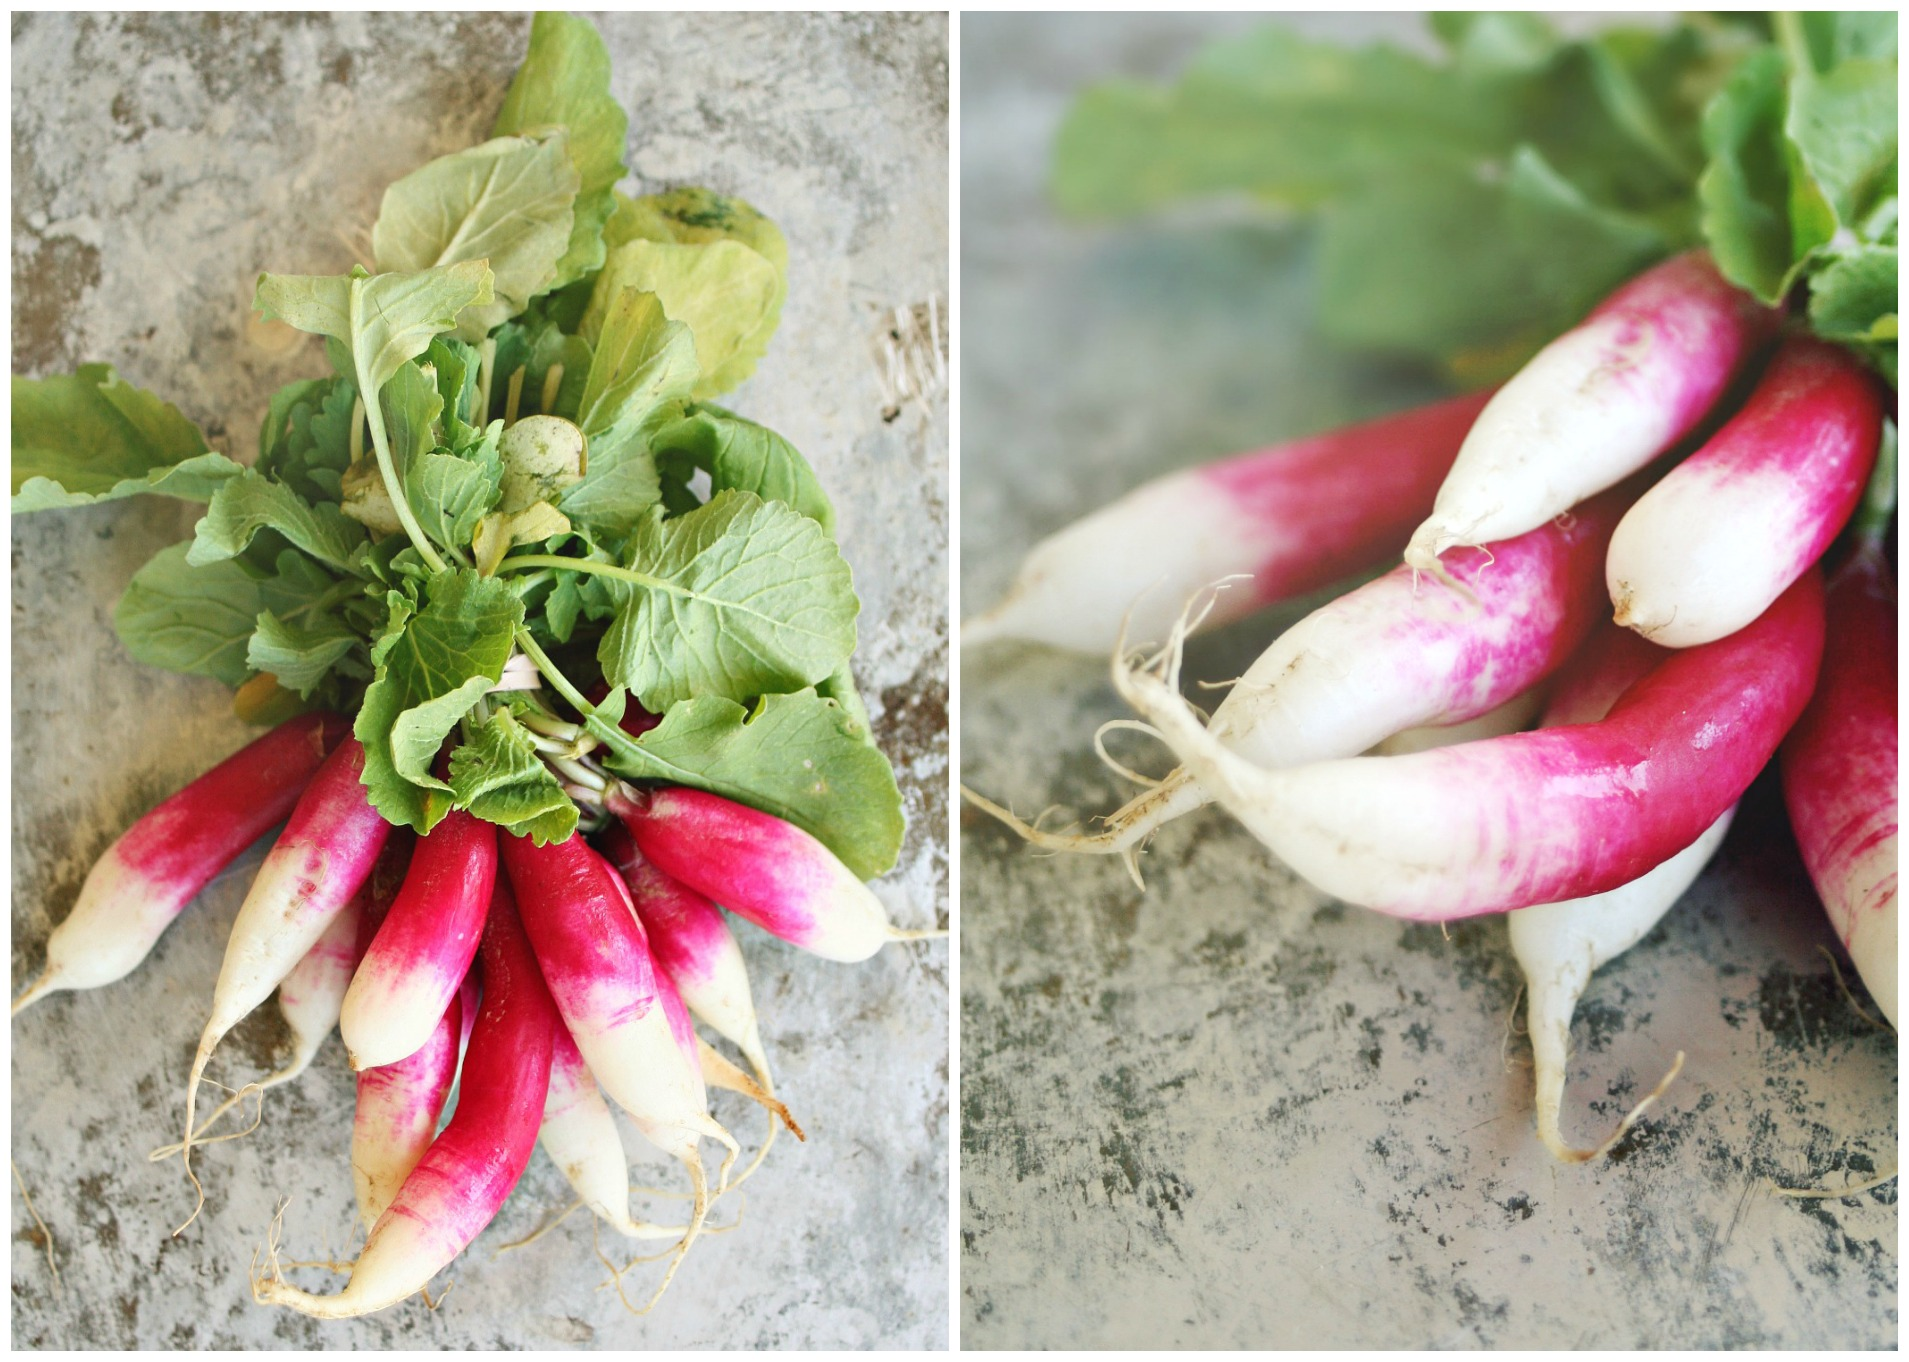 French Breakfast Radish Collage